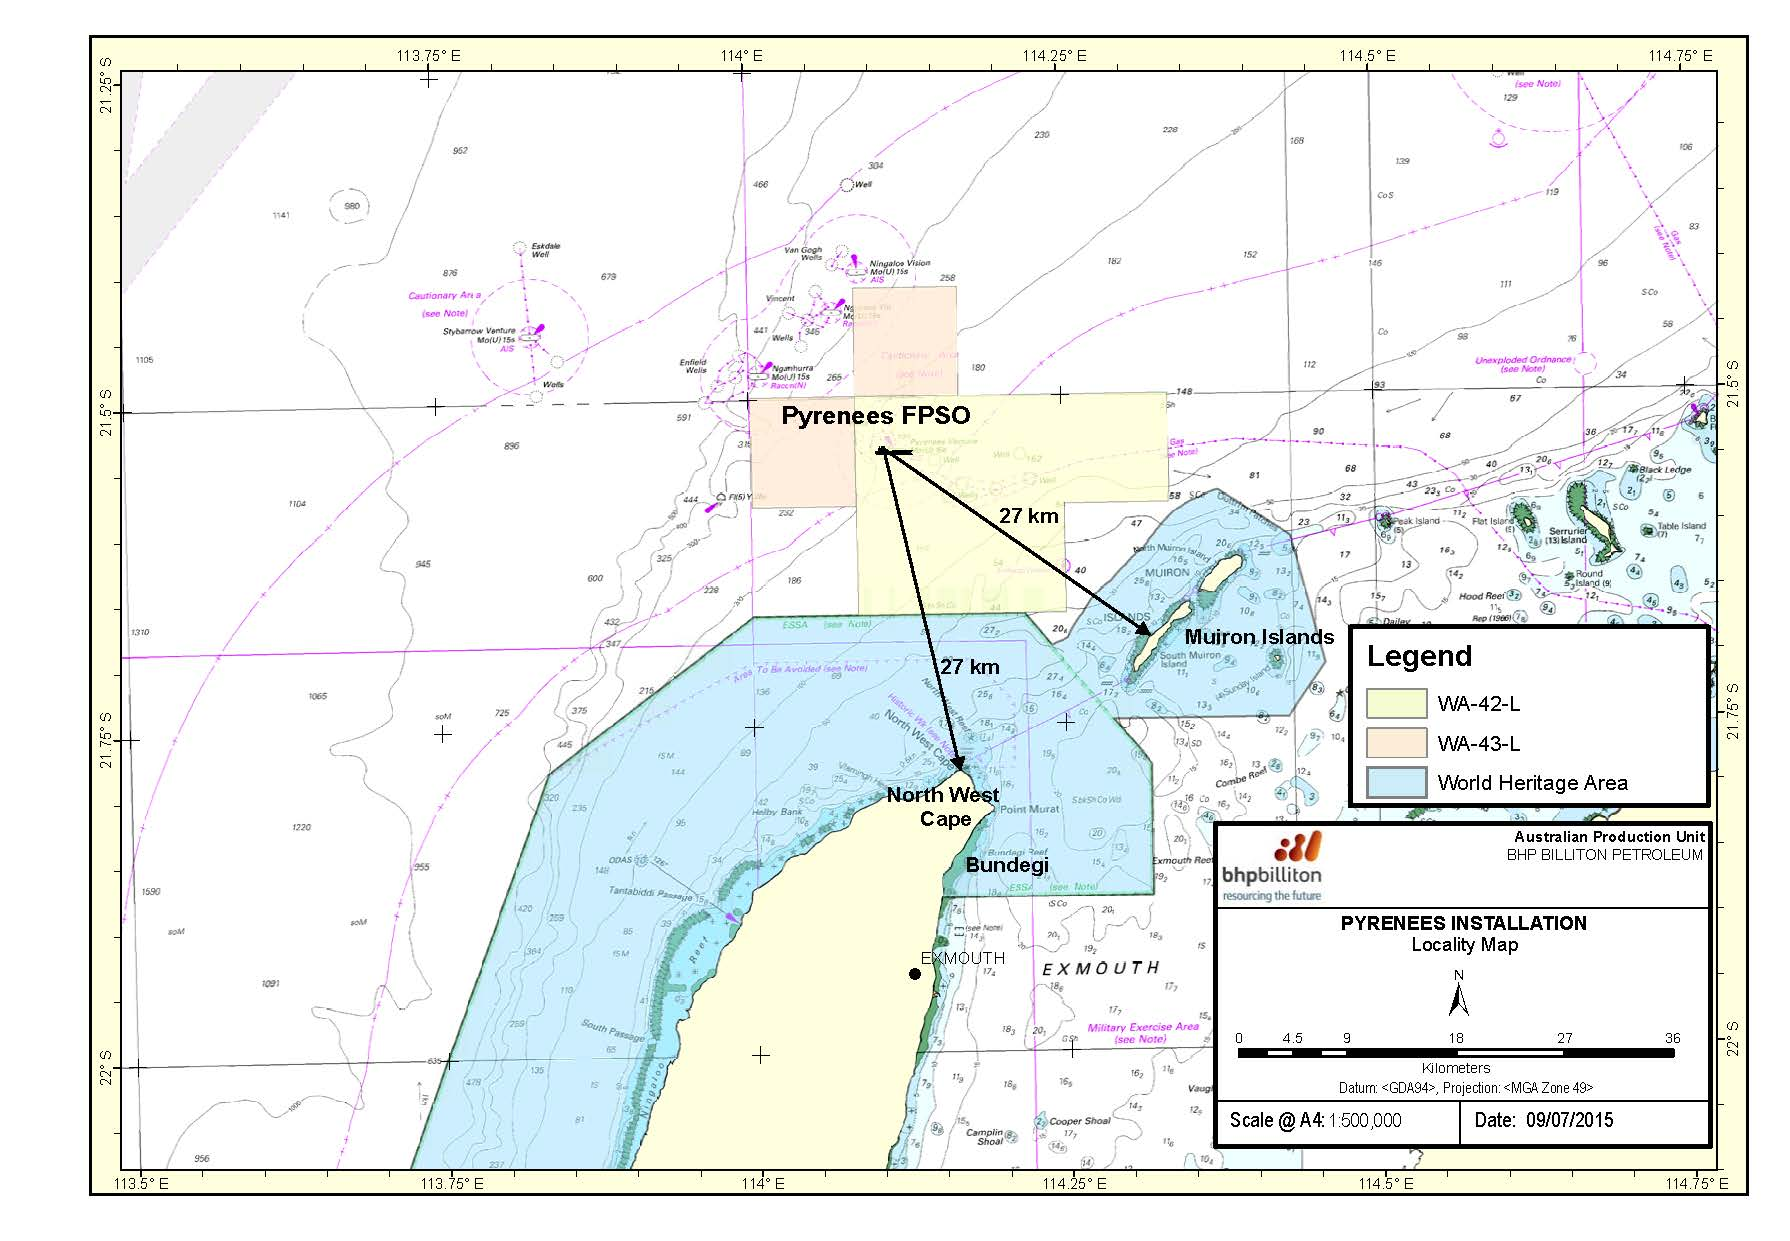 Location map - Activity: Pyrenees Expansion Installation - subsea completions, installation and tie-in (refer to description)